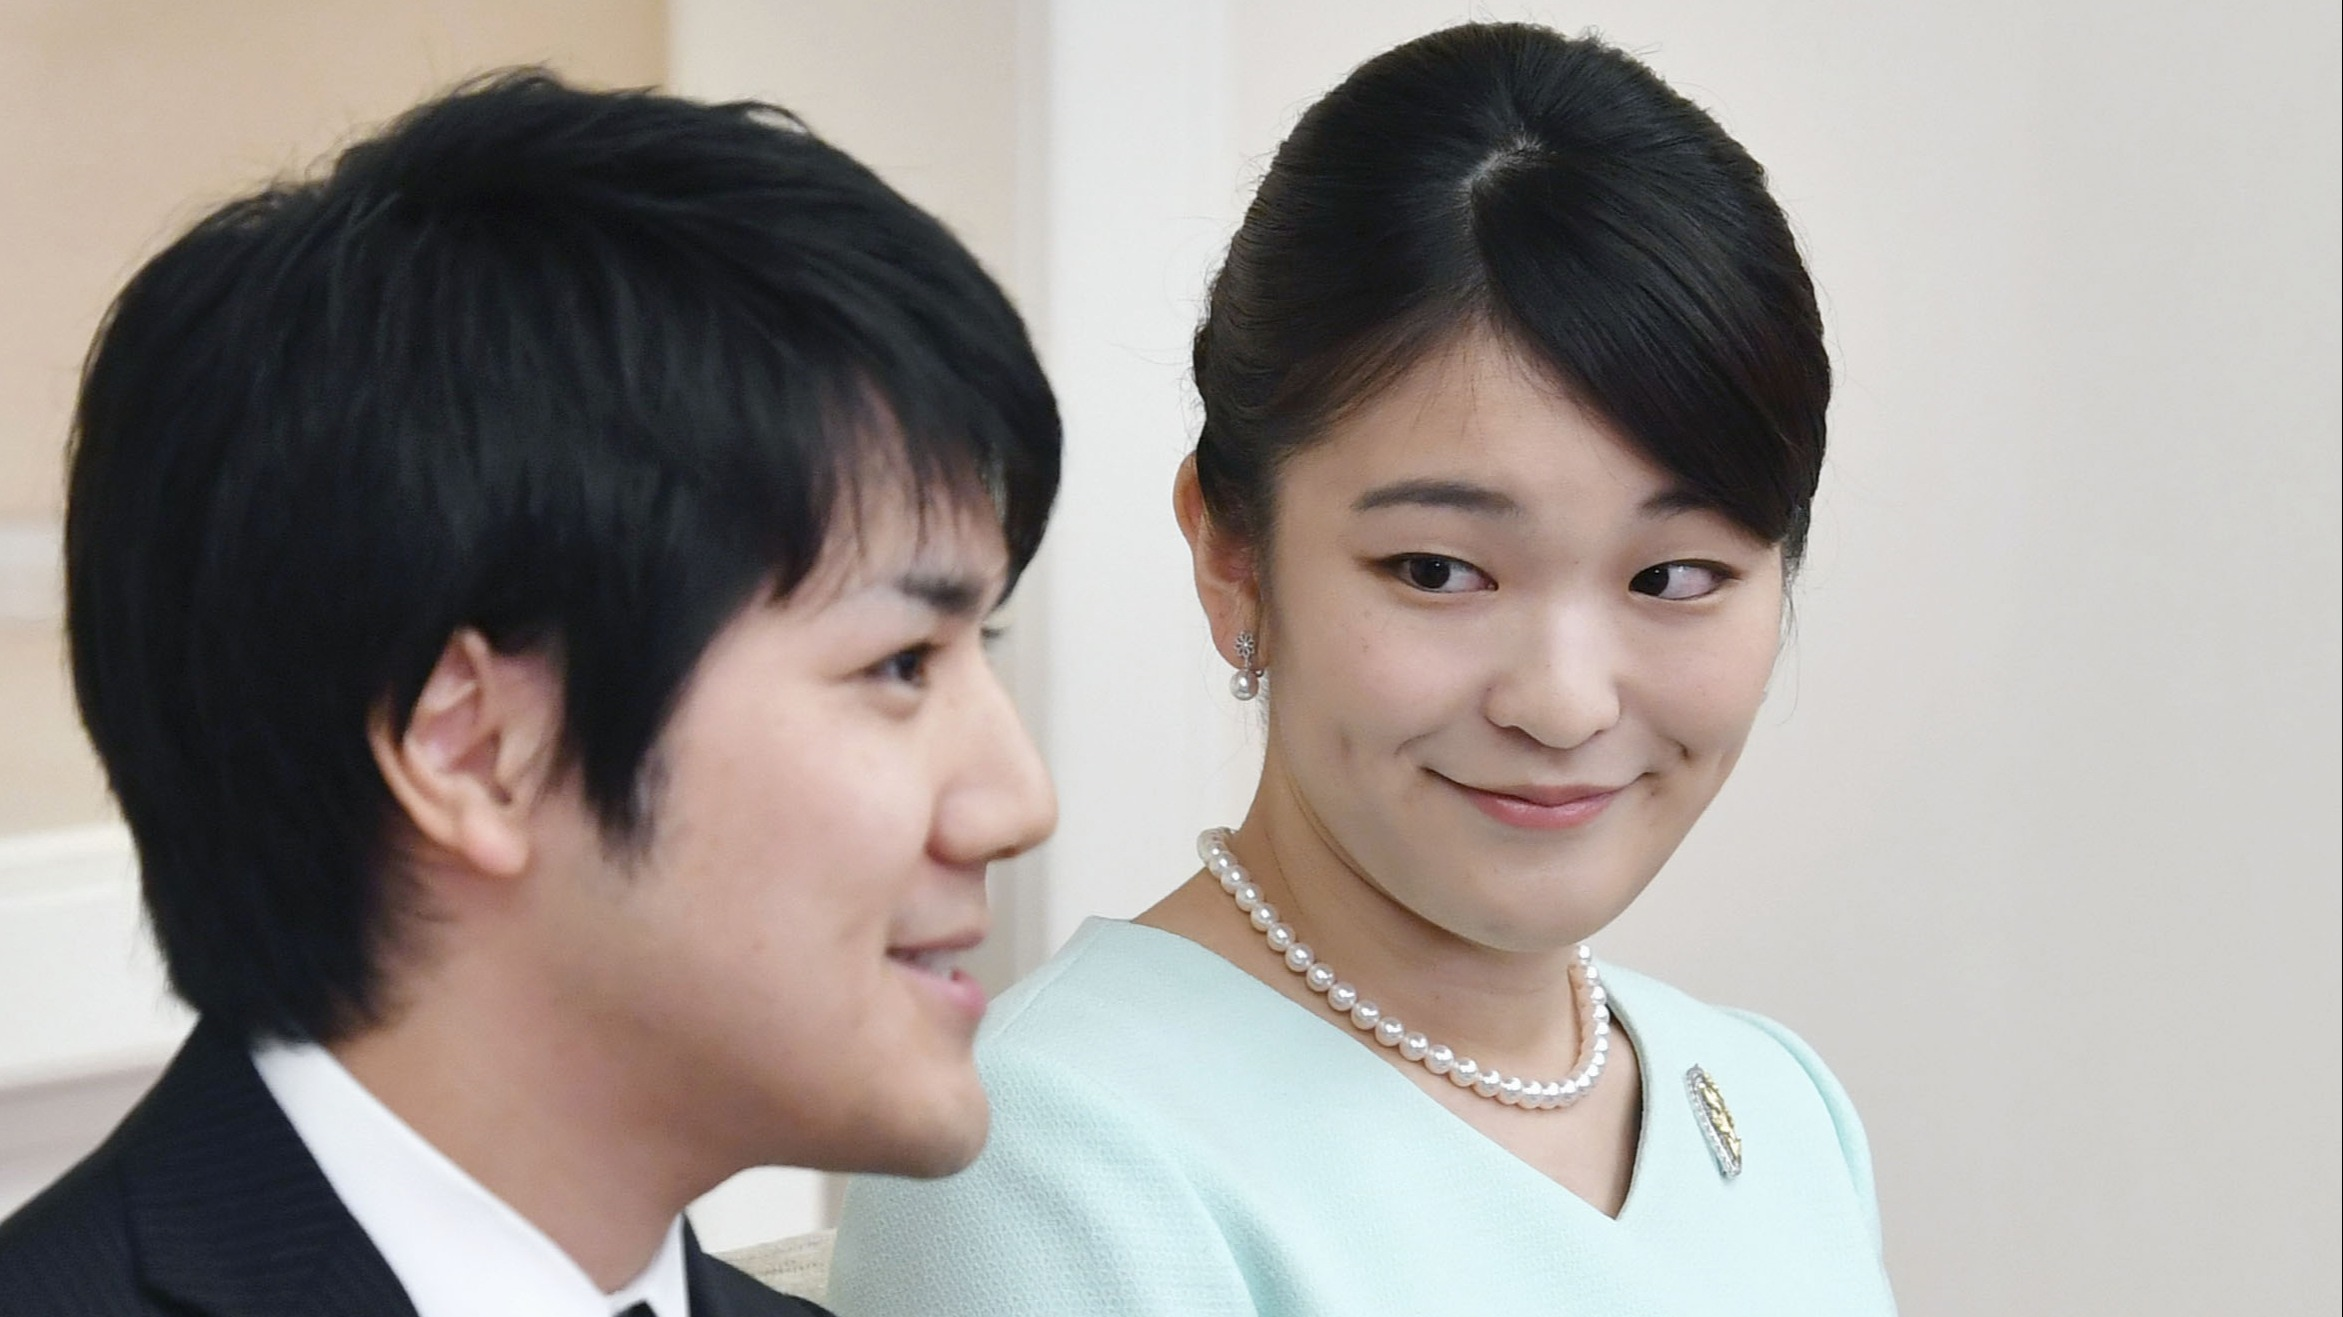 #Love: Japan's Princess Chose To Marry A Commoner!